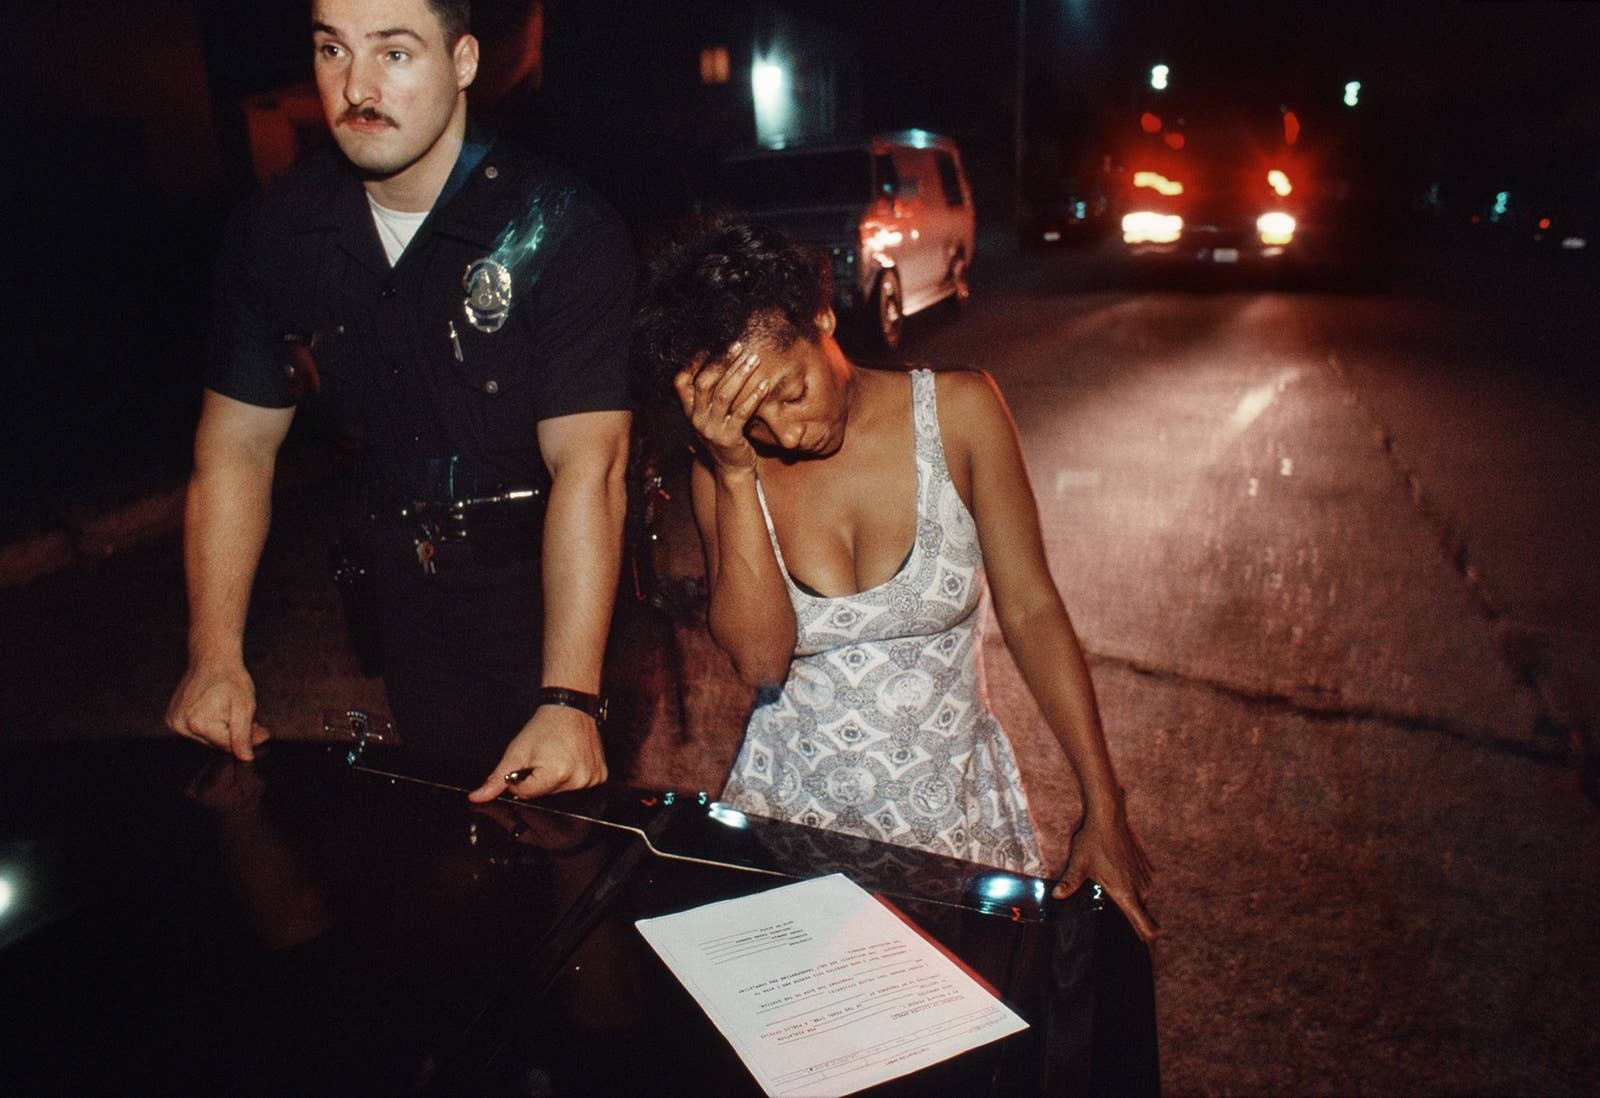 A woman holds her head in her hand while looking at a piece of paper on the trunk of a car while a police officer stands next to her and looks off into the distance